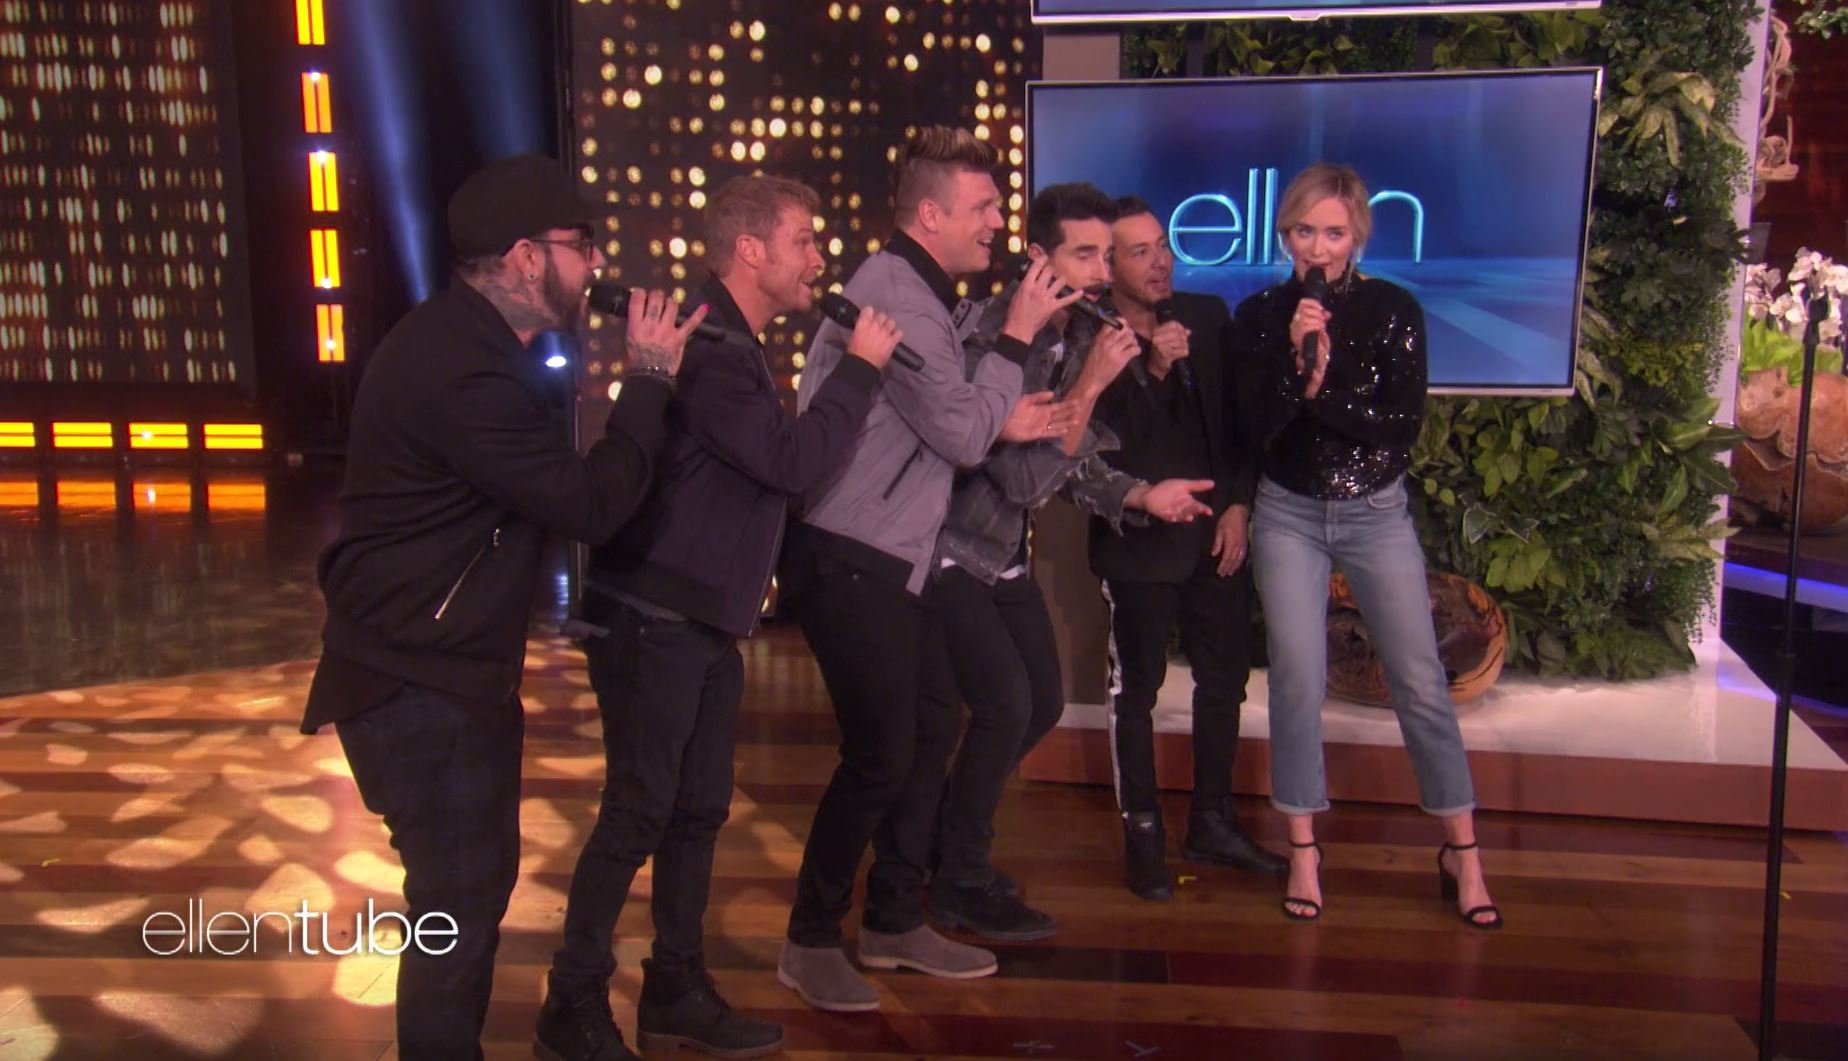 Emily Blunt sings with the Backstreet Boys